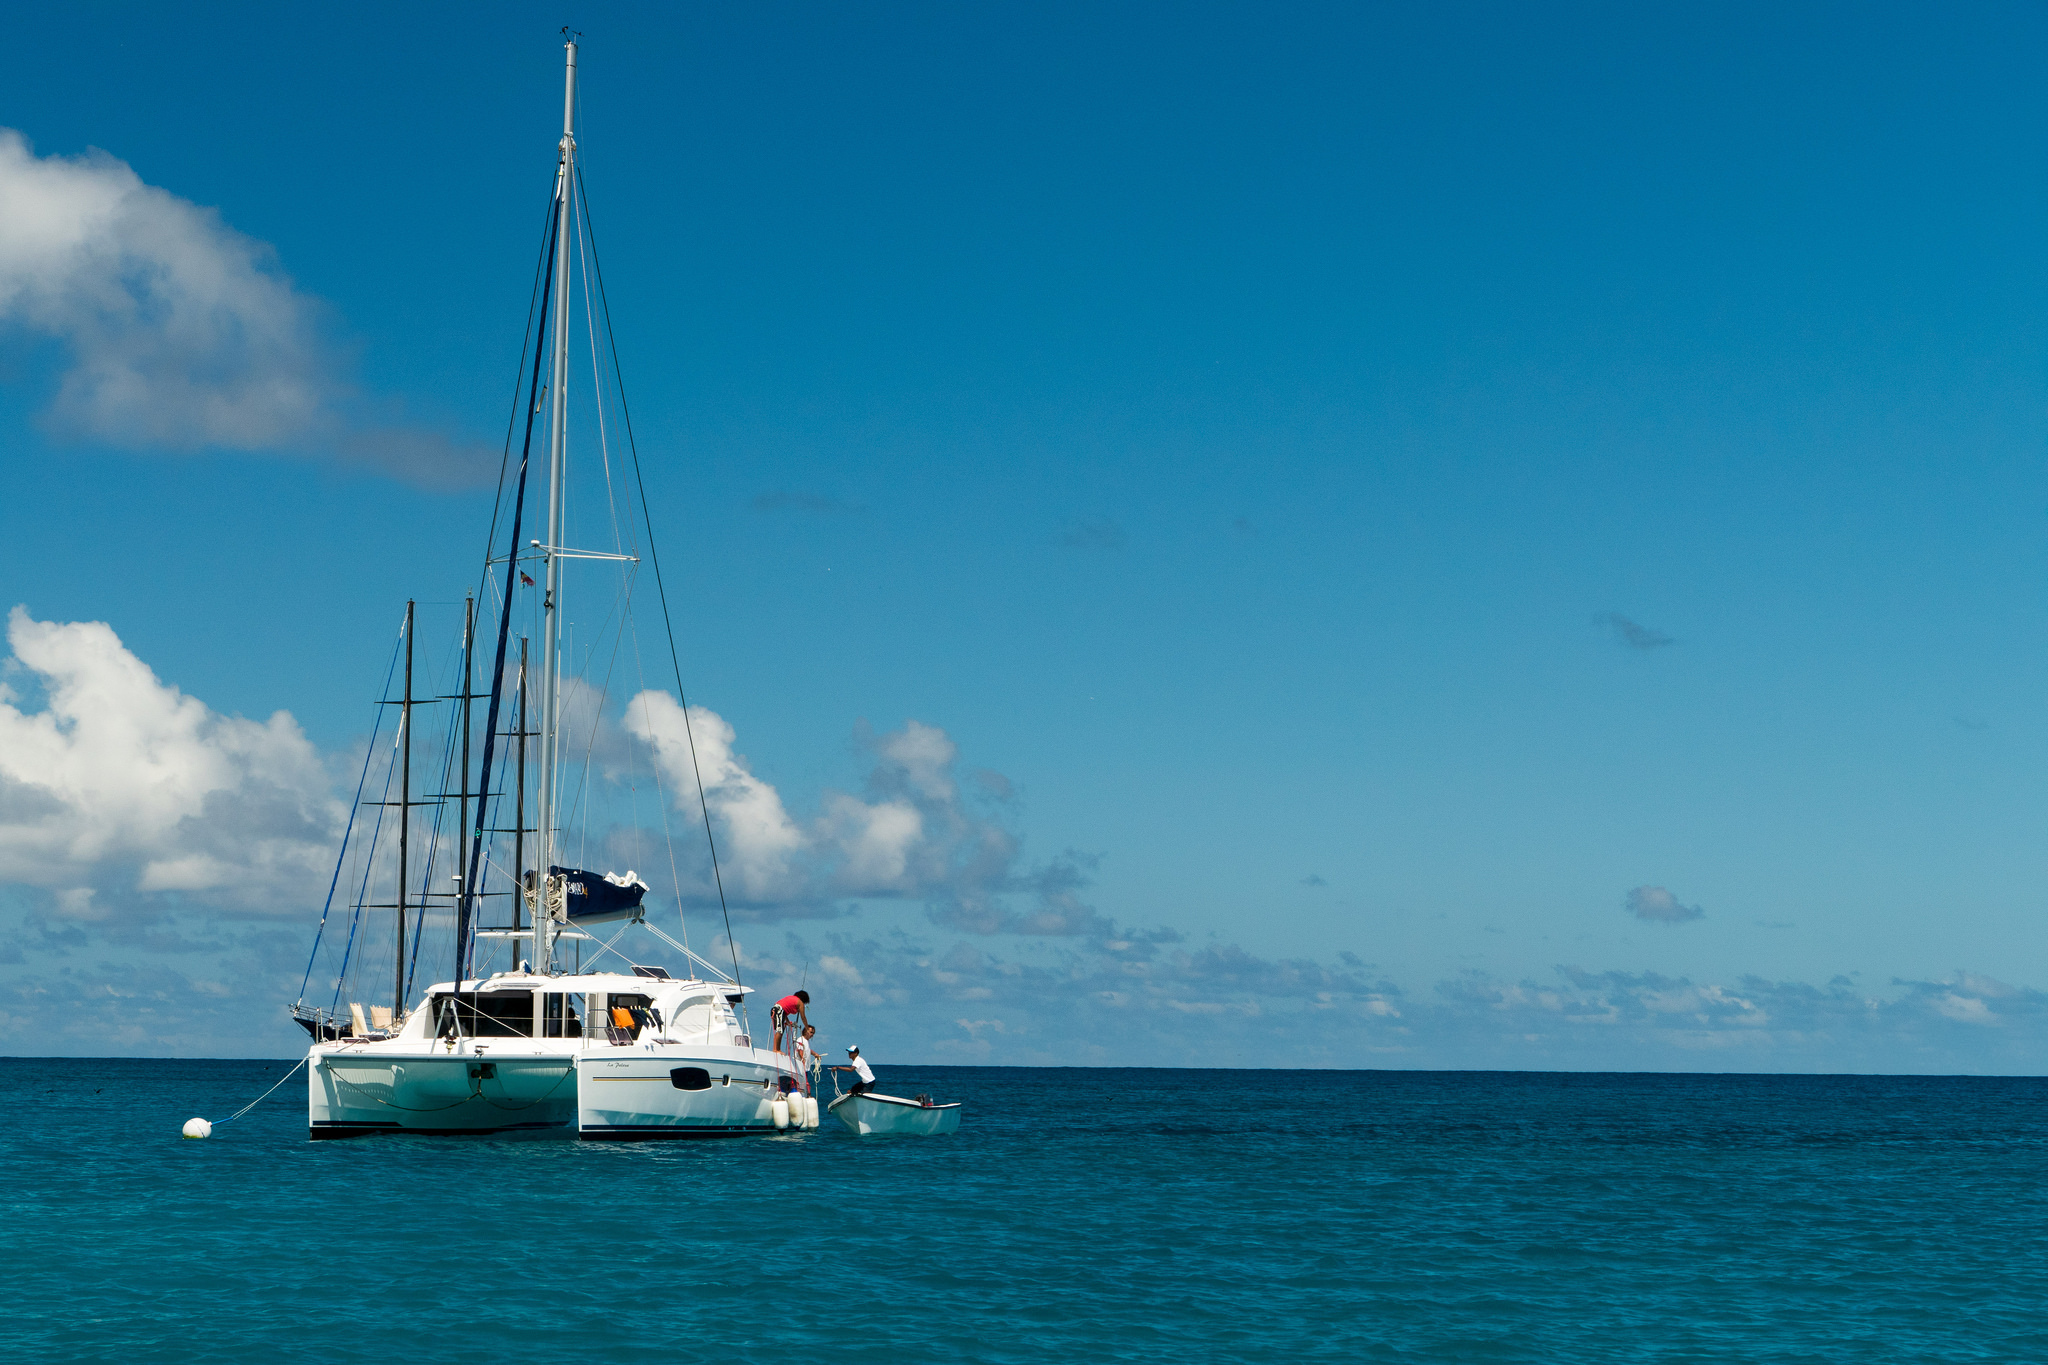 Take a boat trip together around the inner islands. | ©so seychelles/flickr